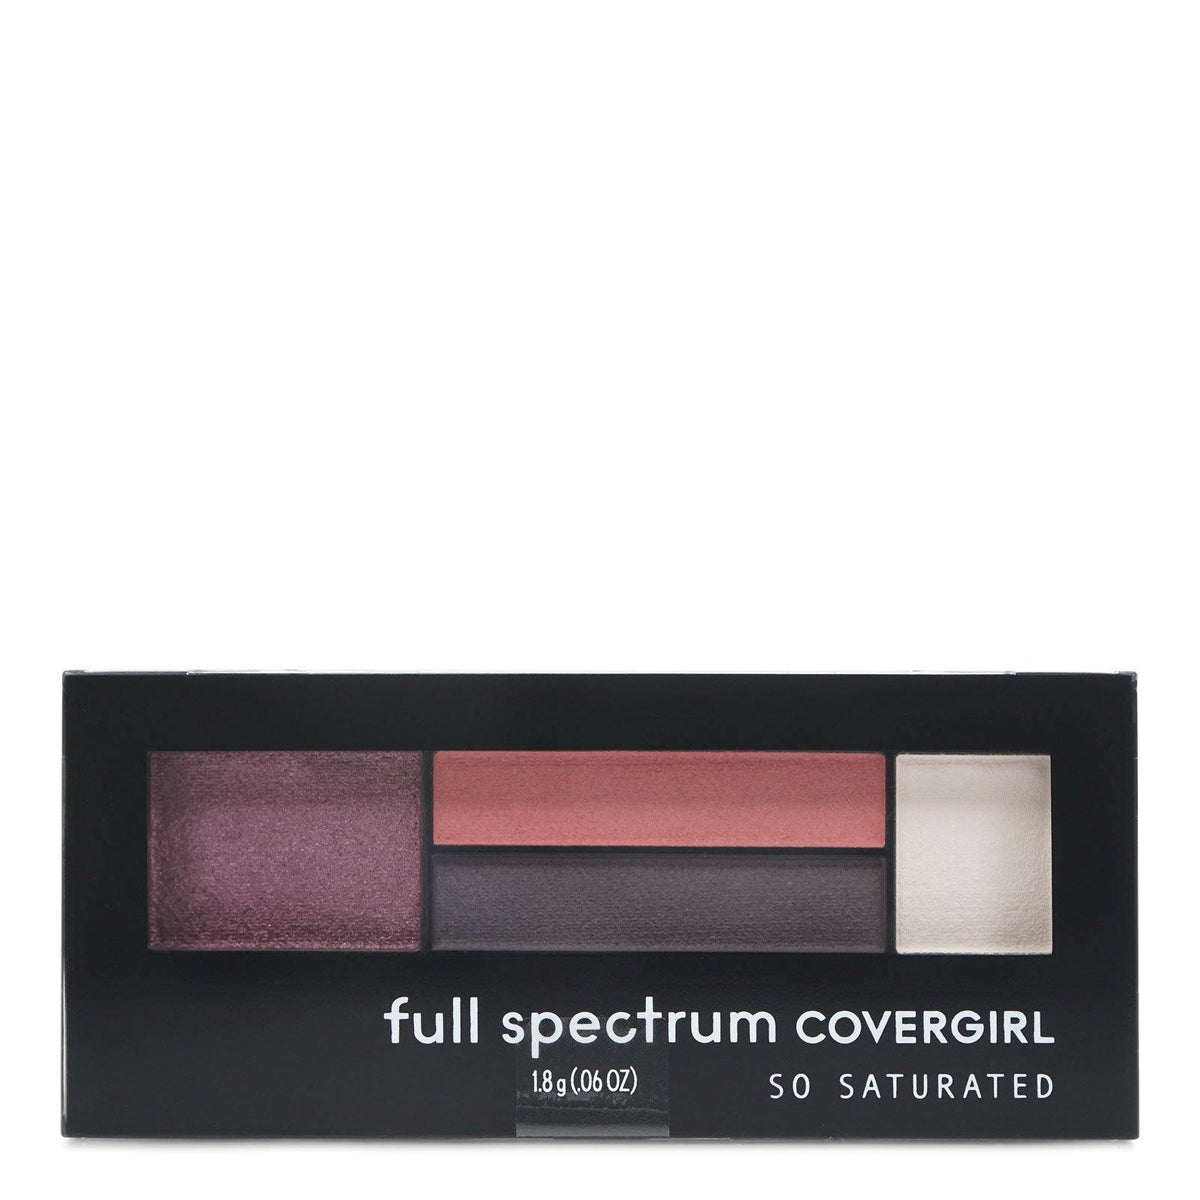 COVERGIRL SO SATURATED QUAD EYESHADOW - Case of 24 units